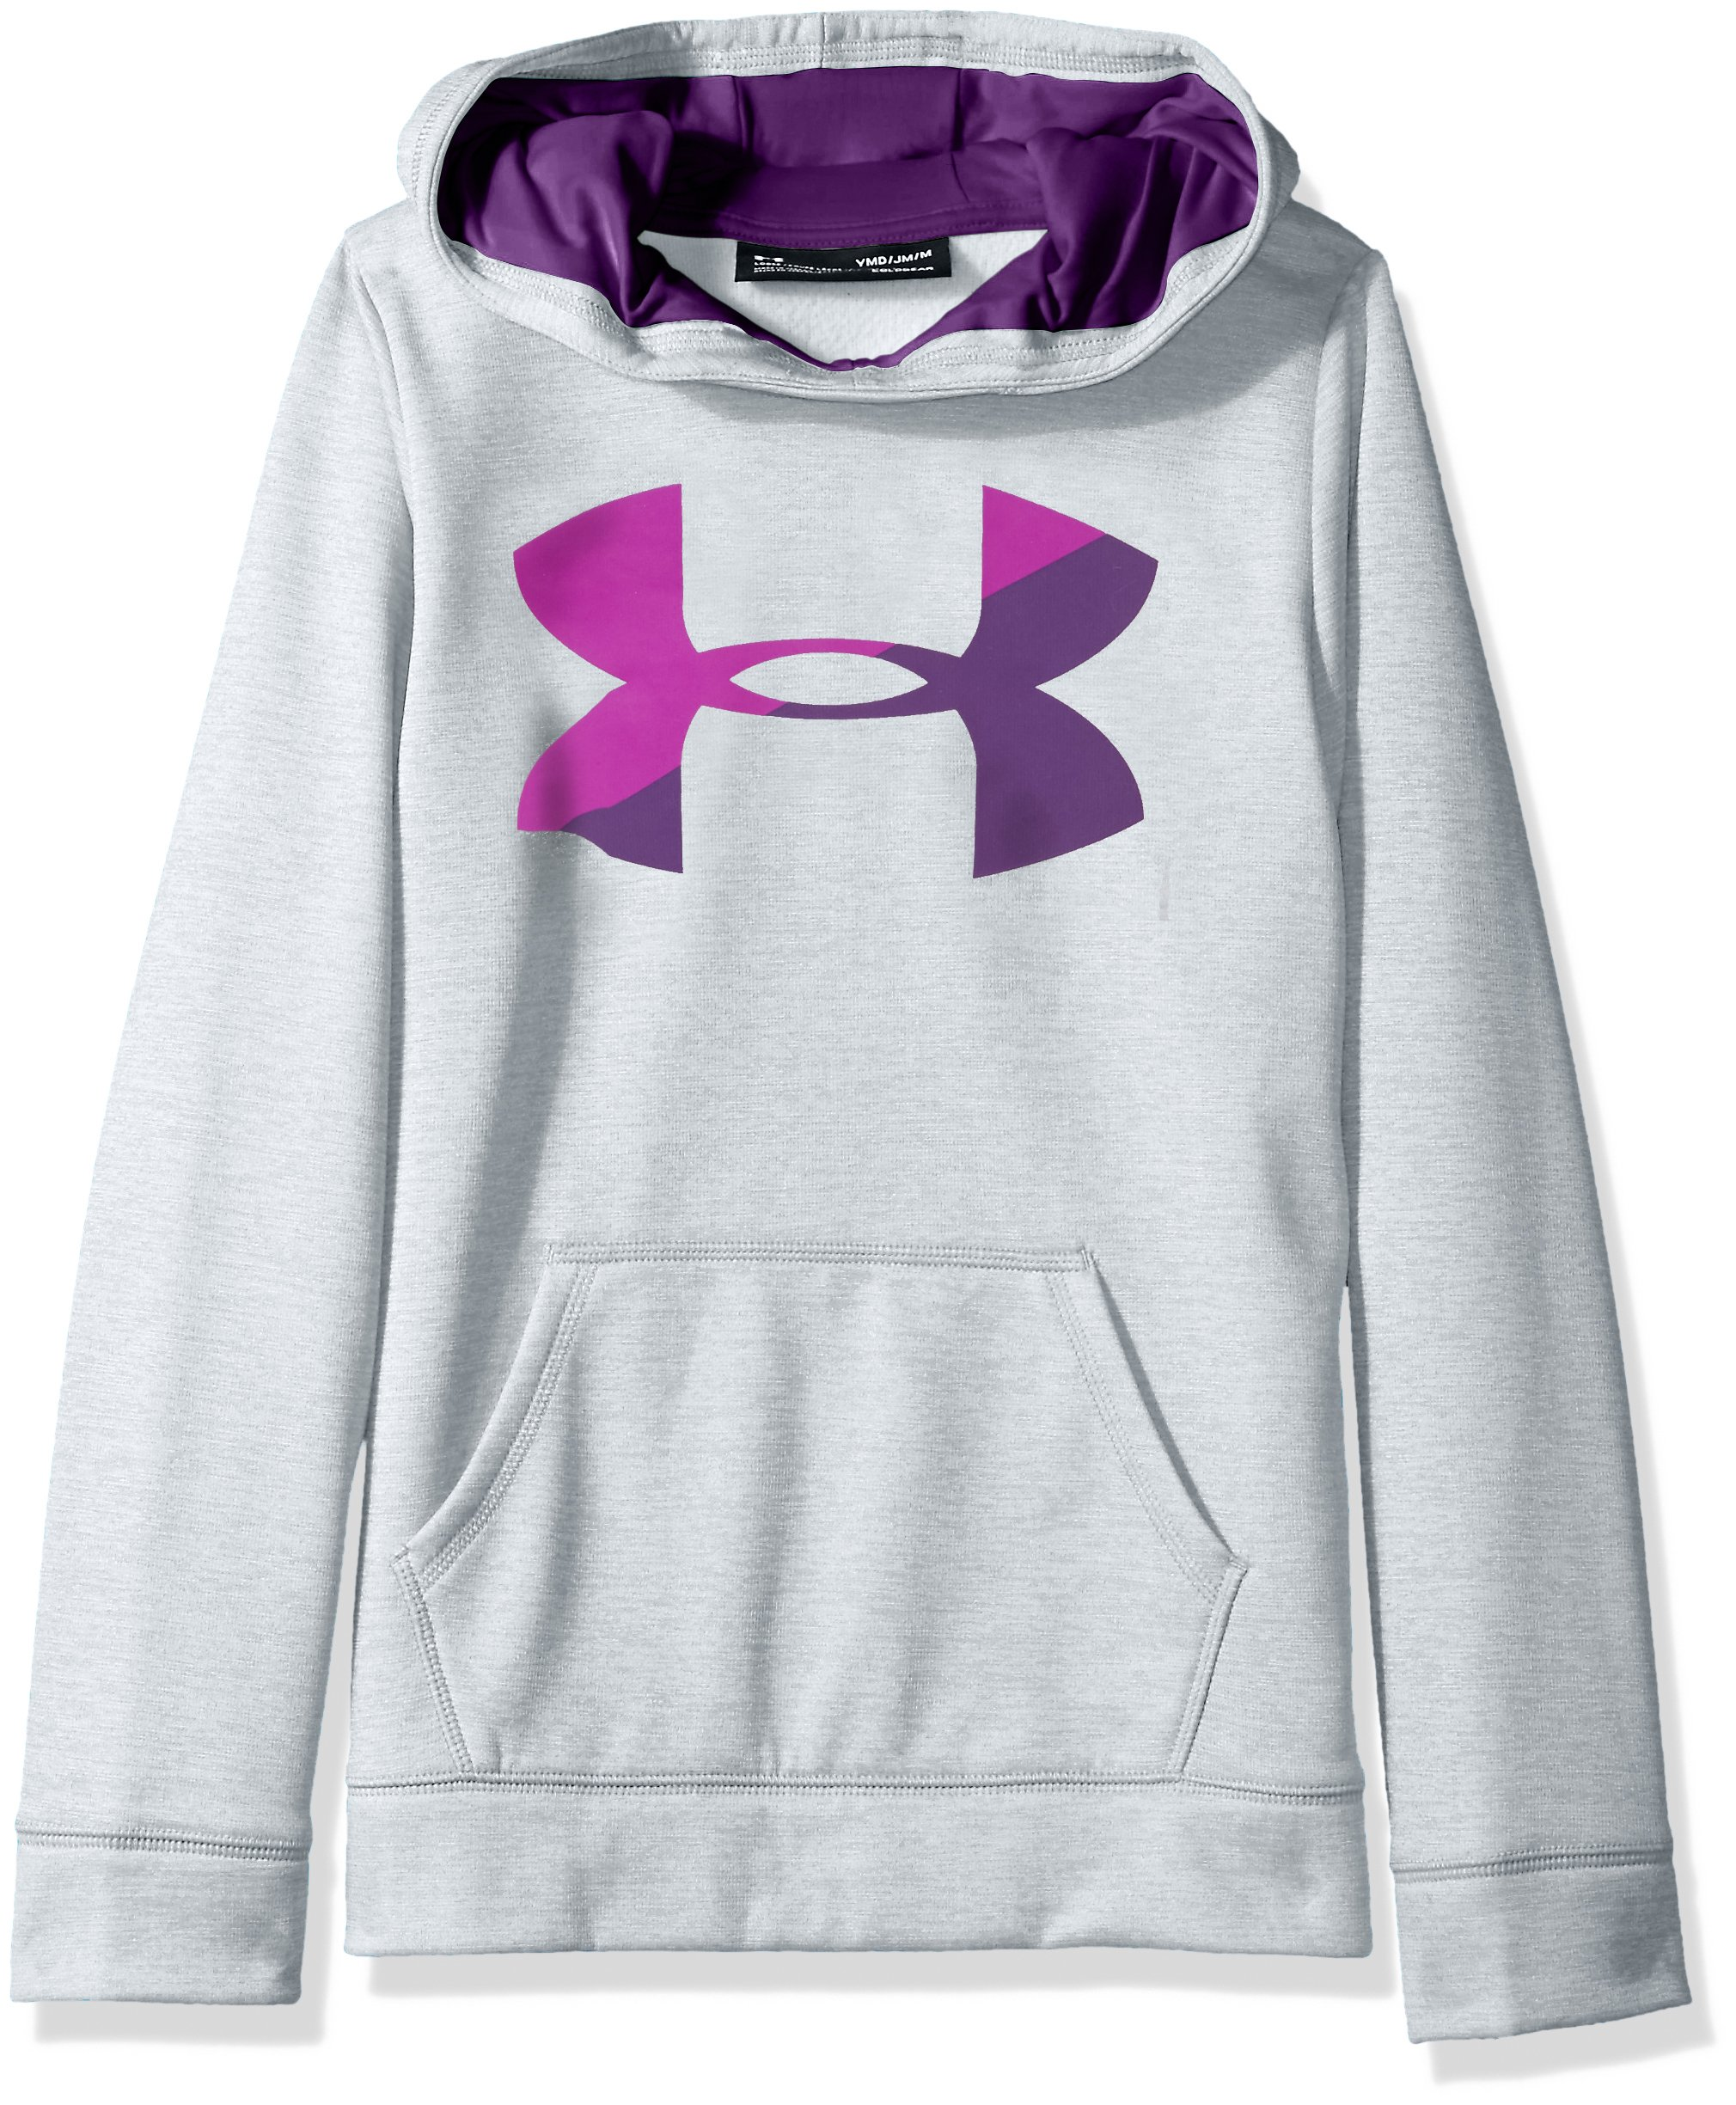 Under Armour Girls' Armour Fleece Big Logo Novelty Hoodie,Overcast Gray /Indulge, Youth Medium by Under Armour